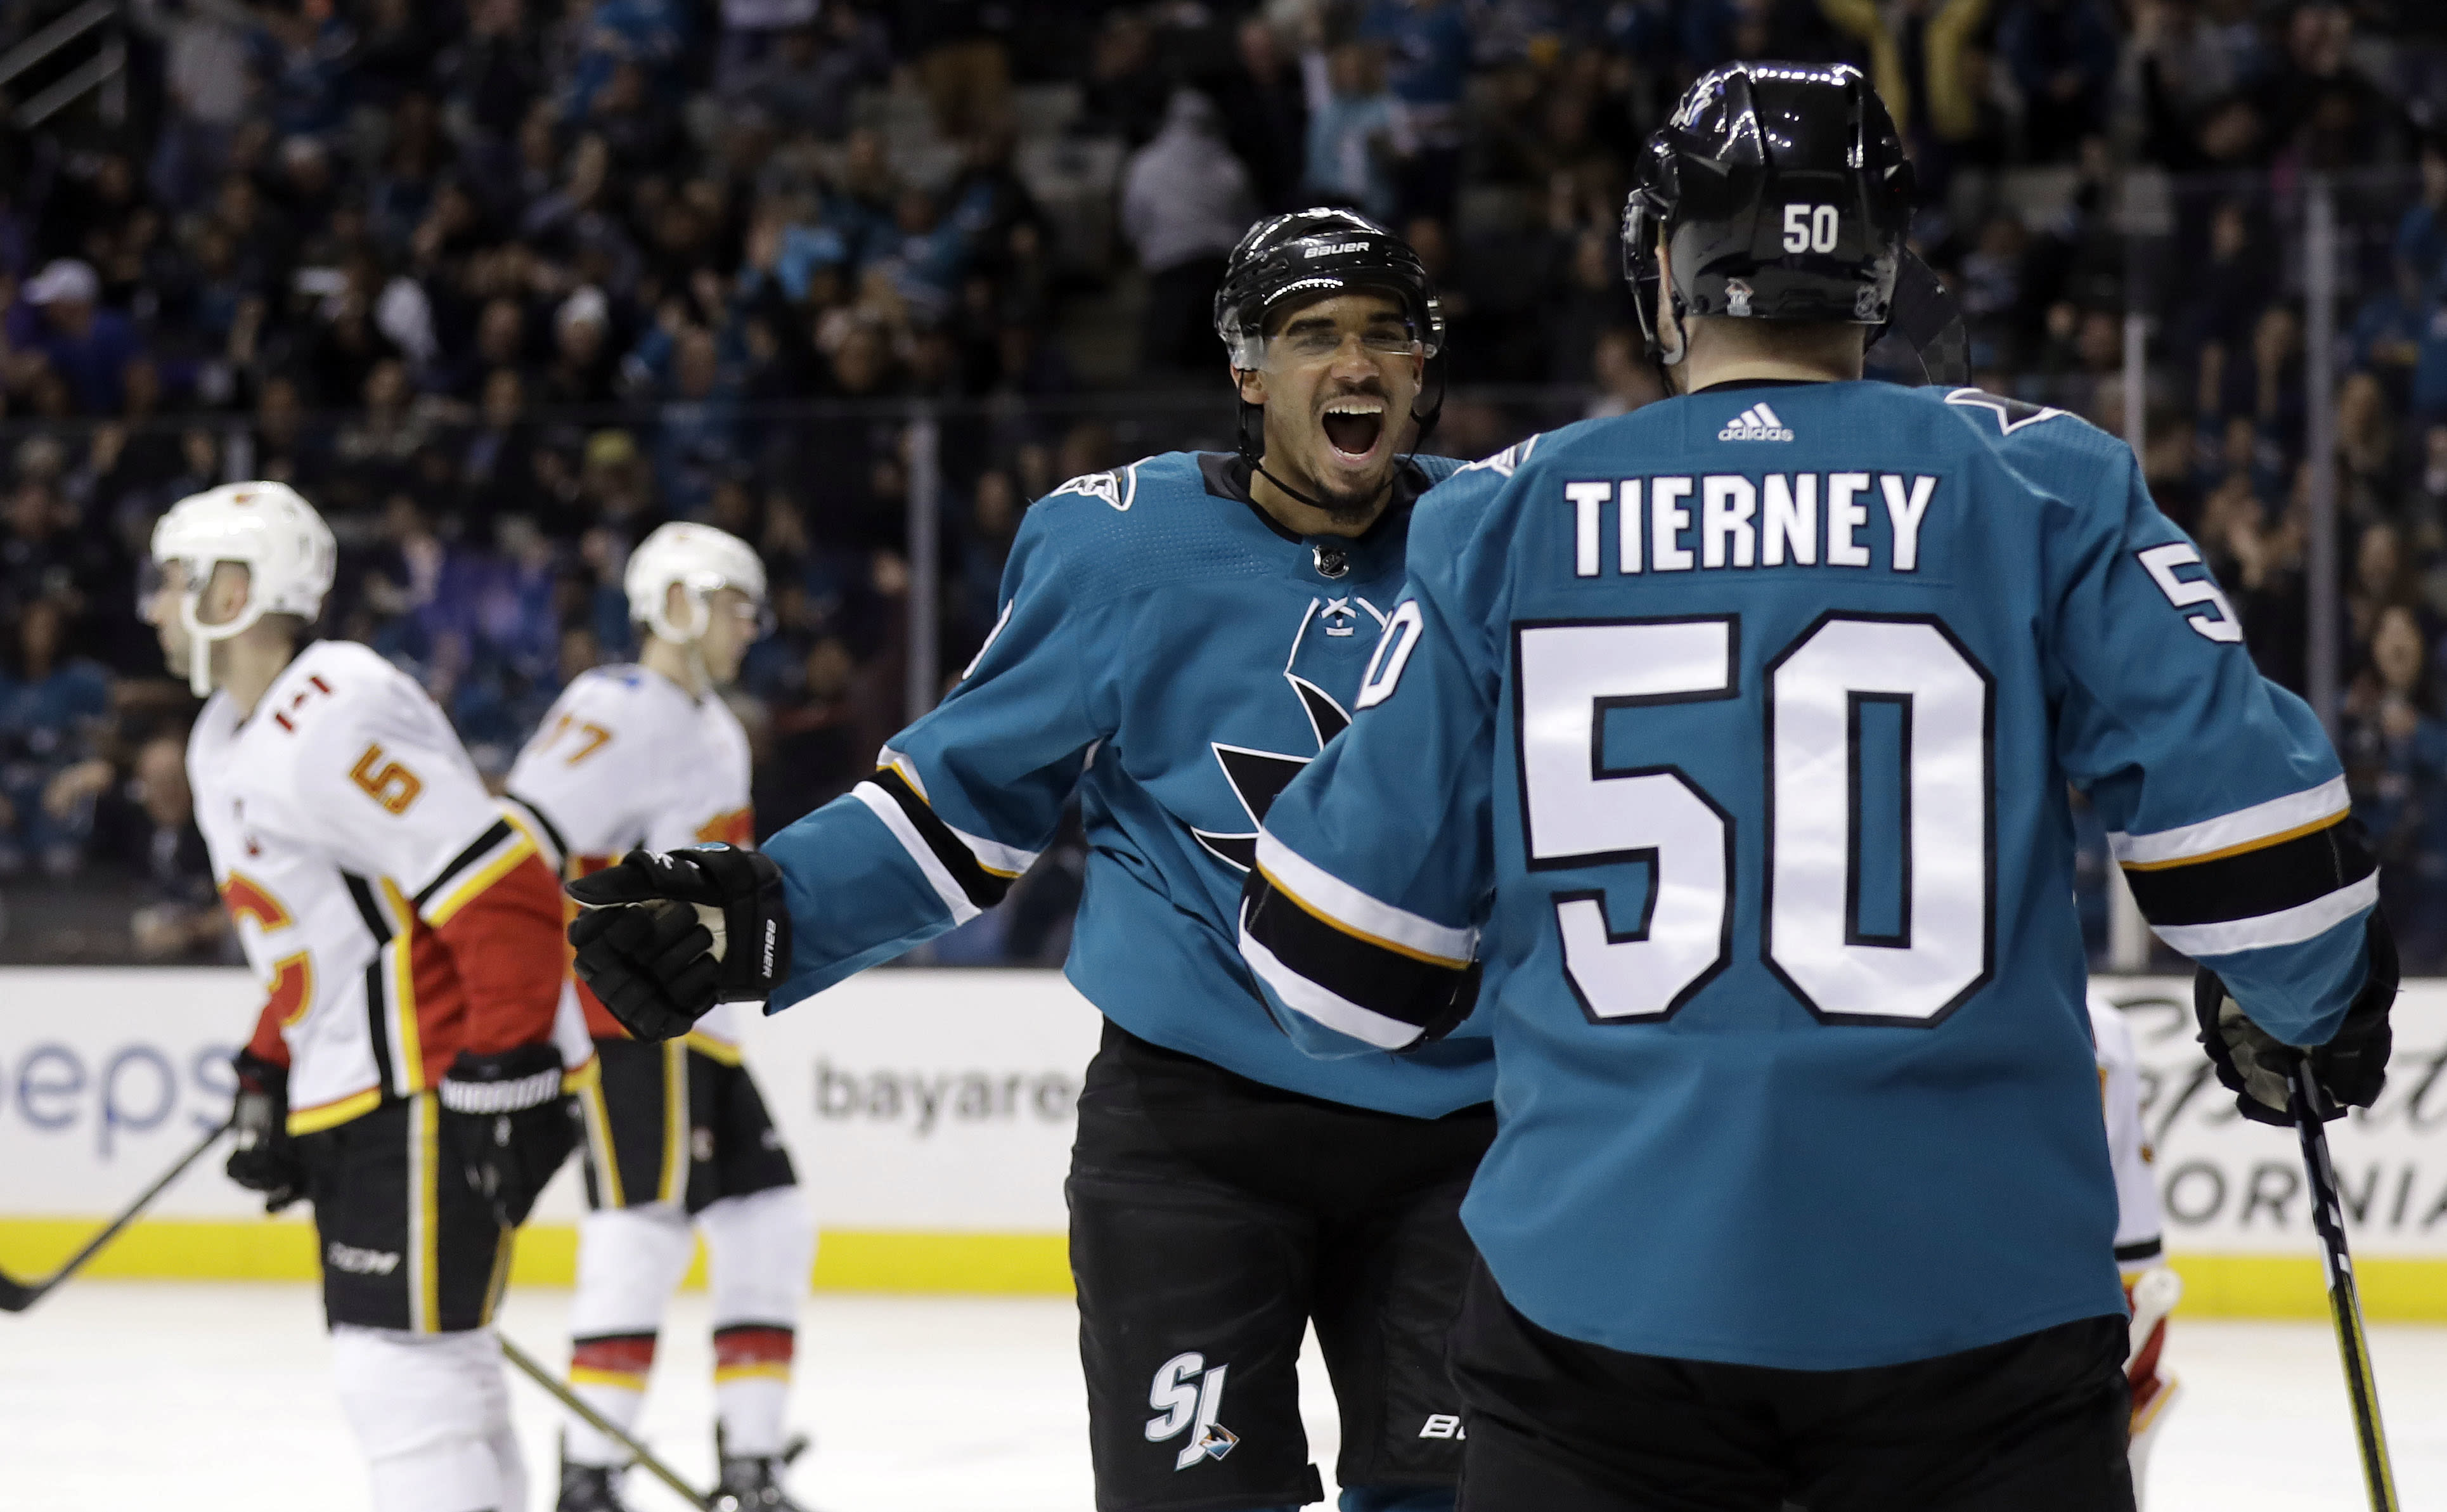 Kane scores twice to lead streaking Sharks past Flames 5-1